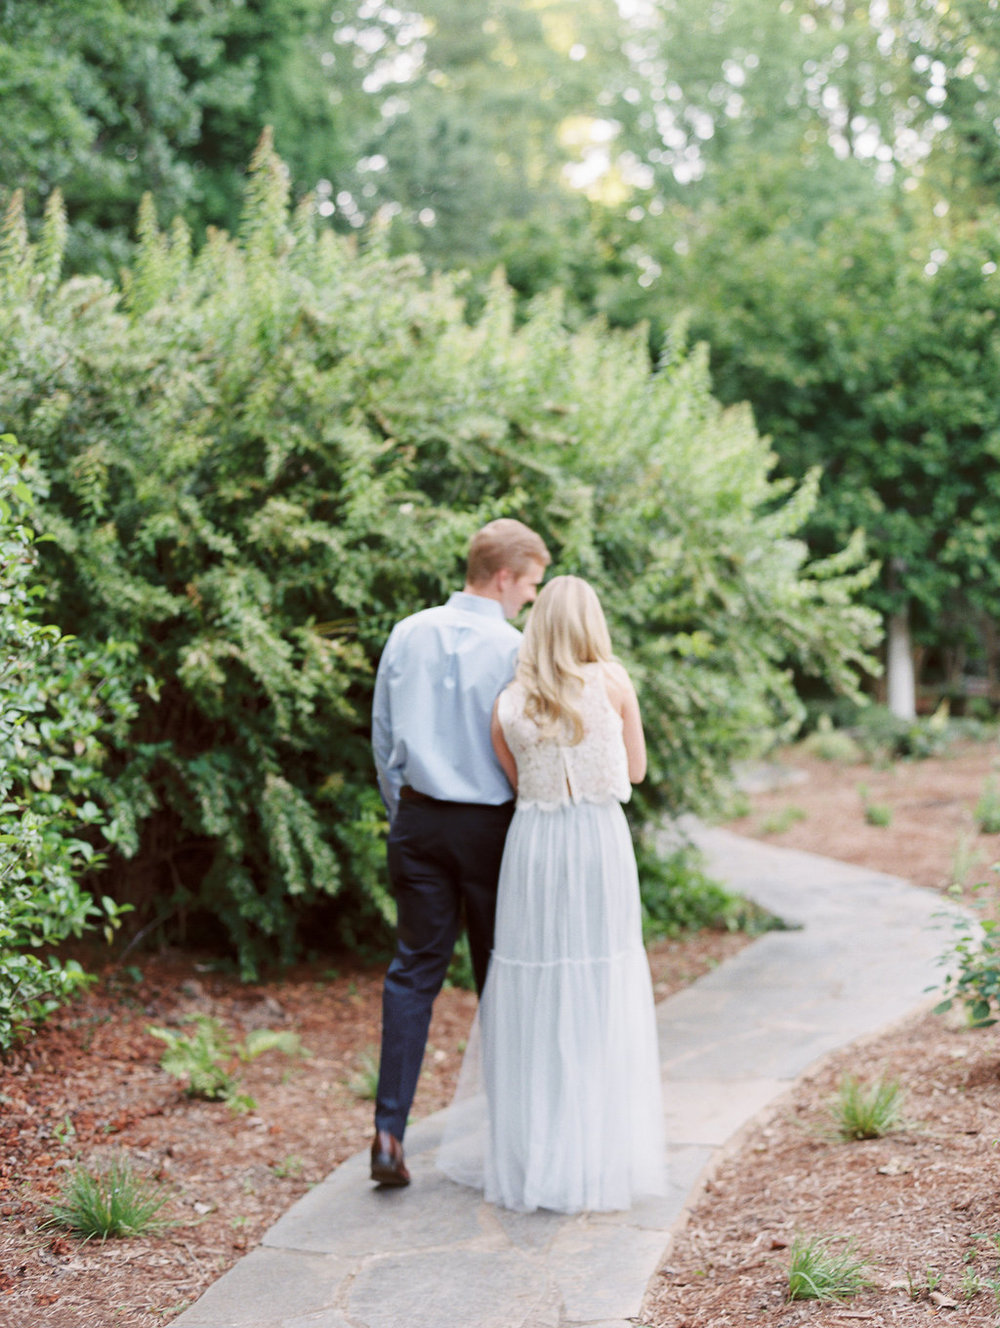 Cator-Woolford-Gardens-Engagement-atlanta-wedding-photographer-hannah-forsberg-22.jpg